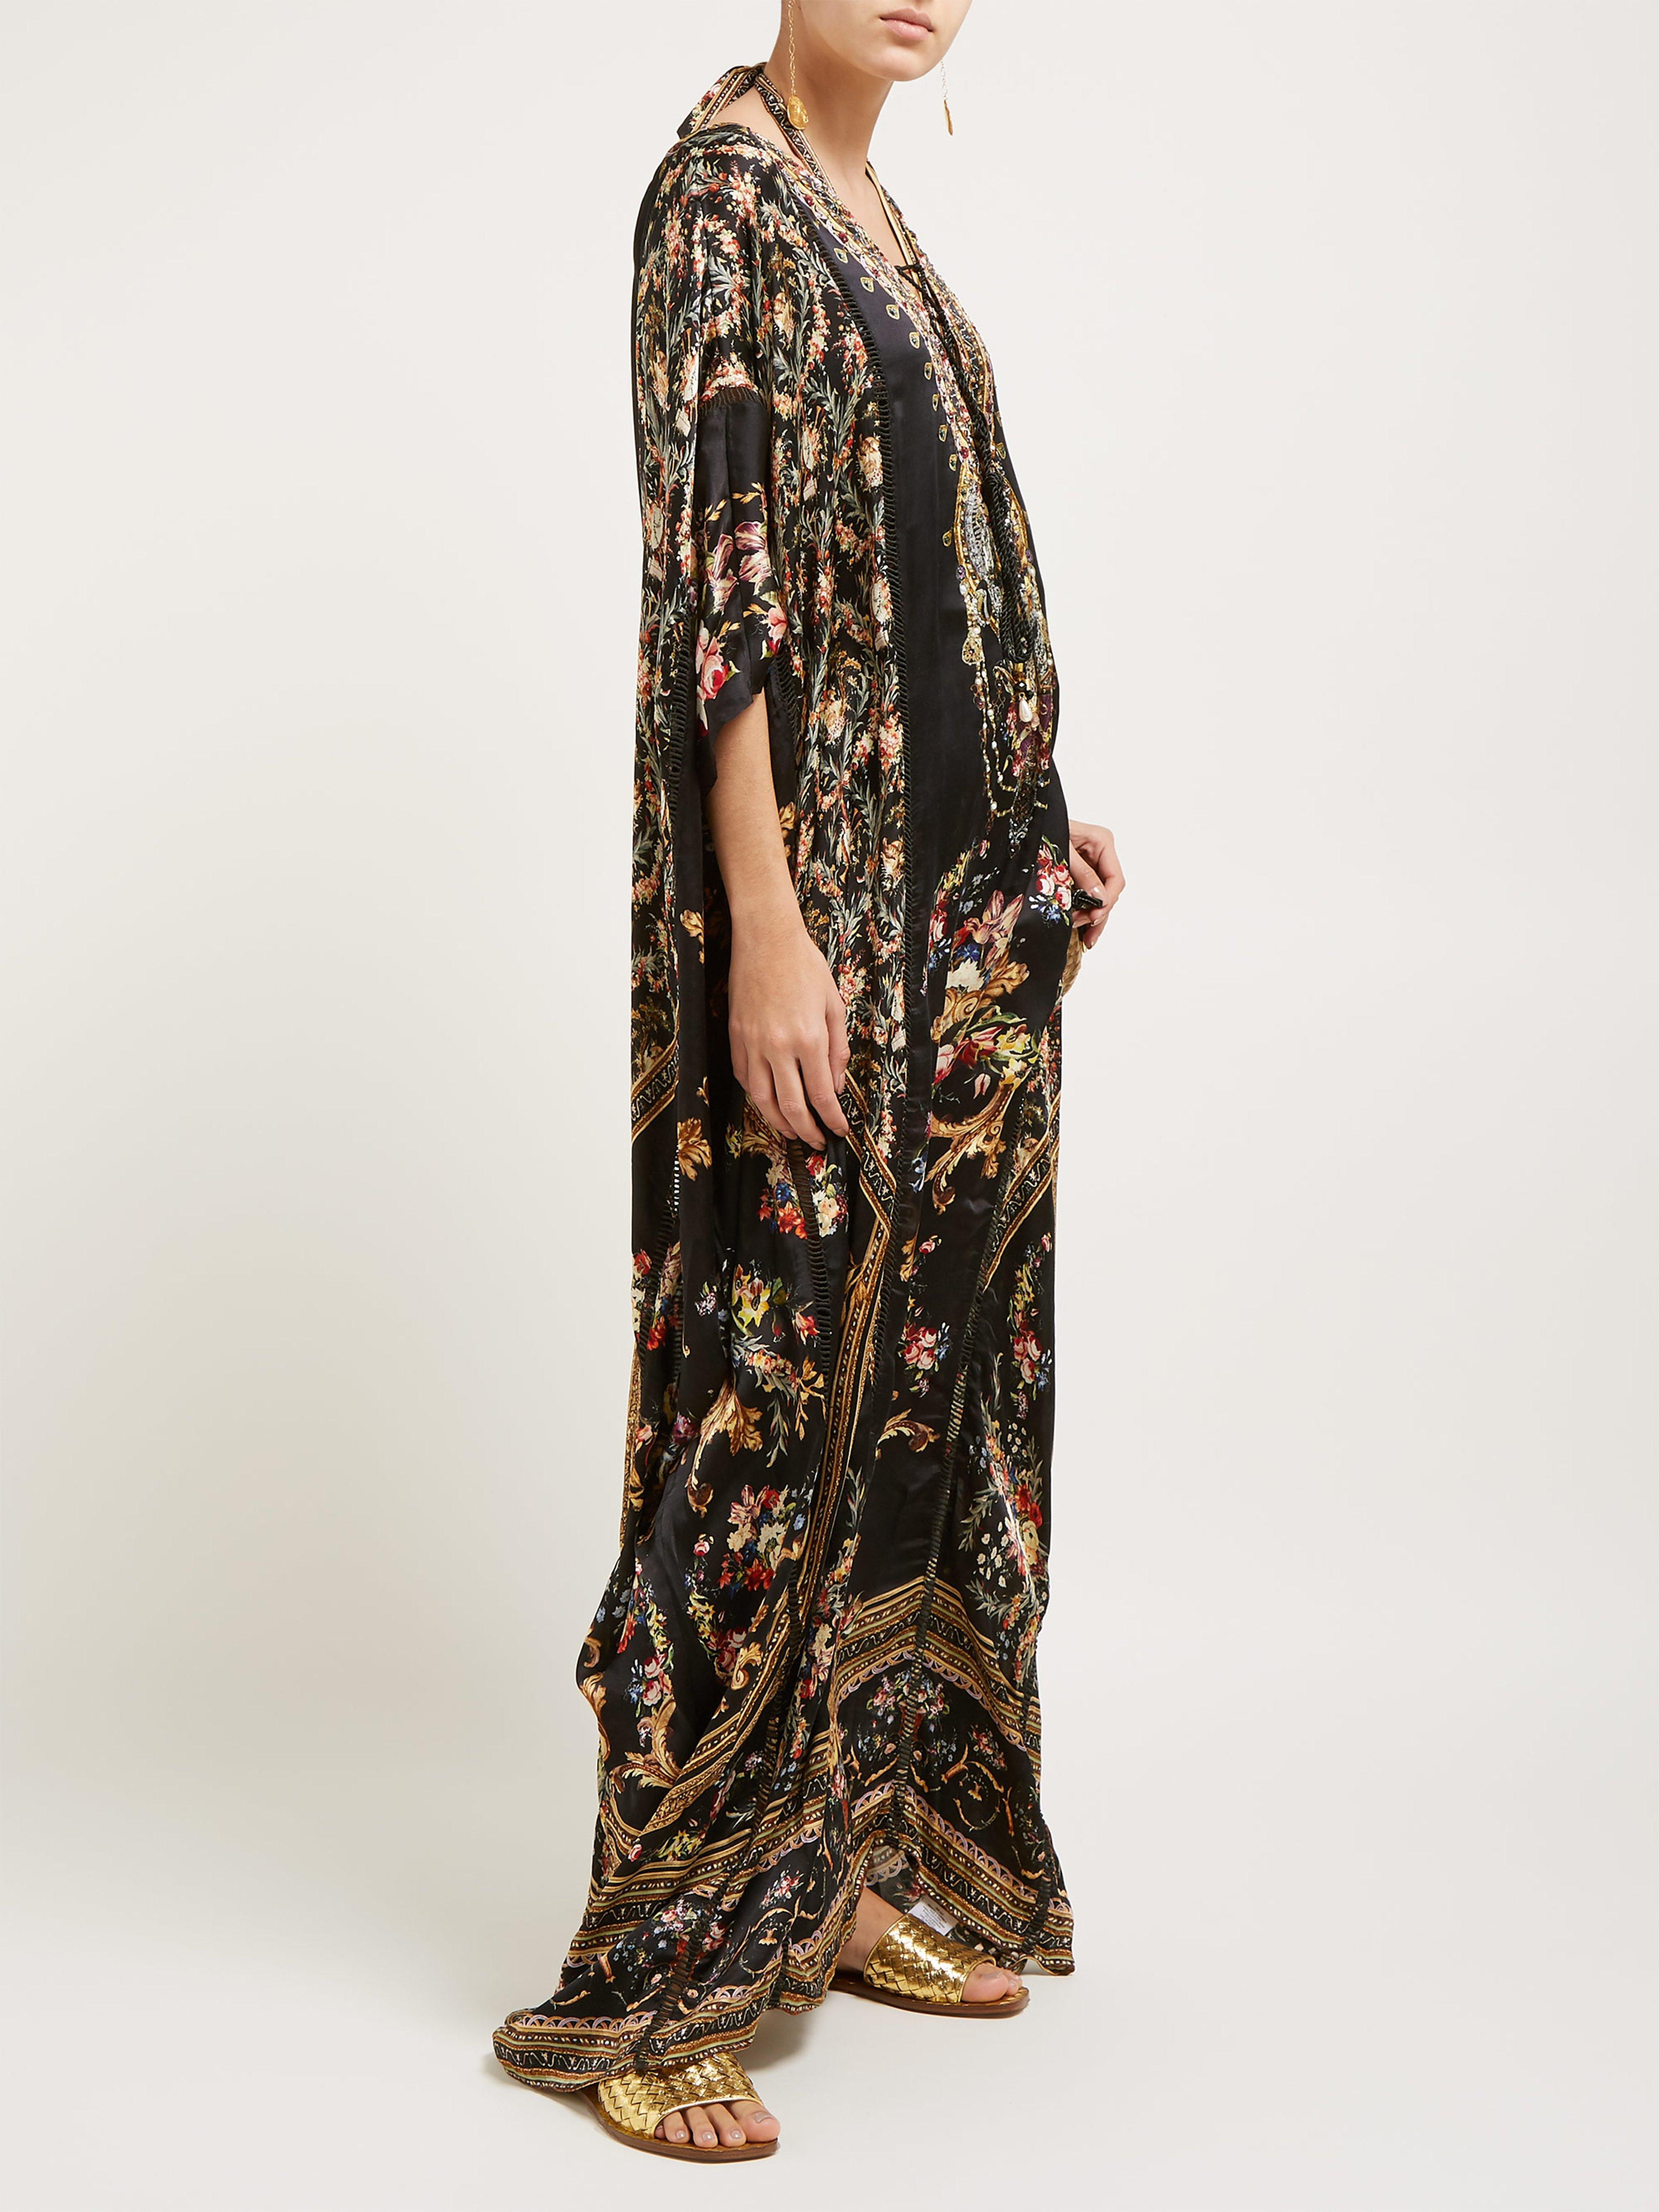 2455d3fe4b204 Camilla Friend In Flora Print Silk Kaftan in Black - Lyst